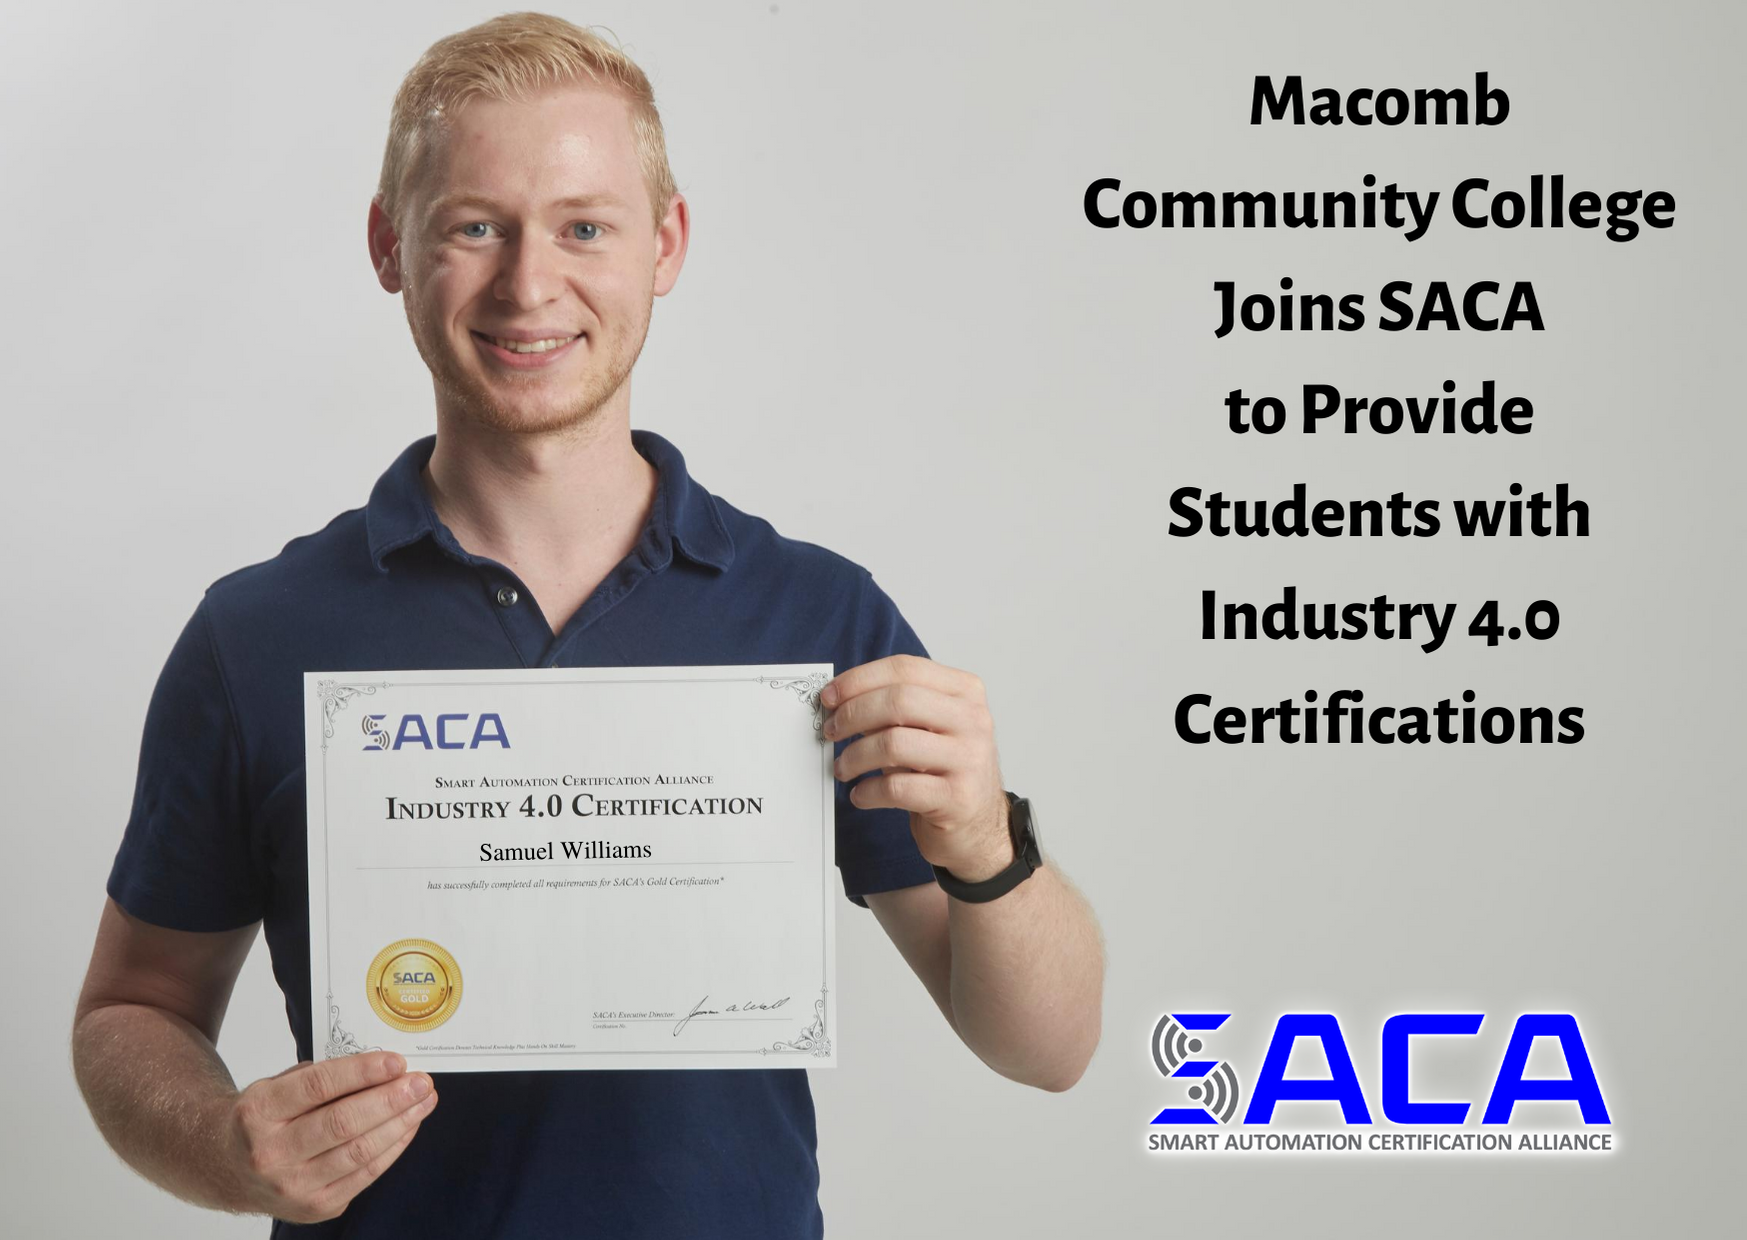 Macomb Community College Joins SACA for Industry 4.0 Certifications